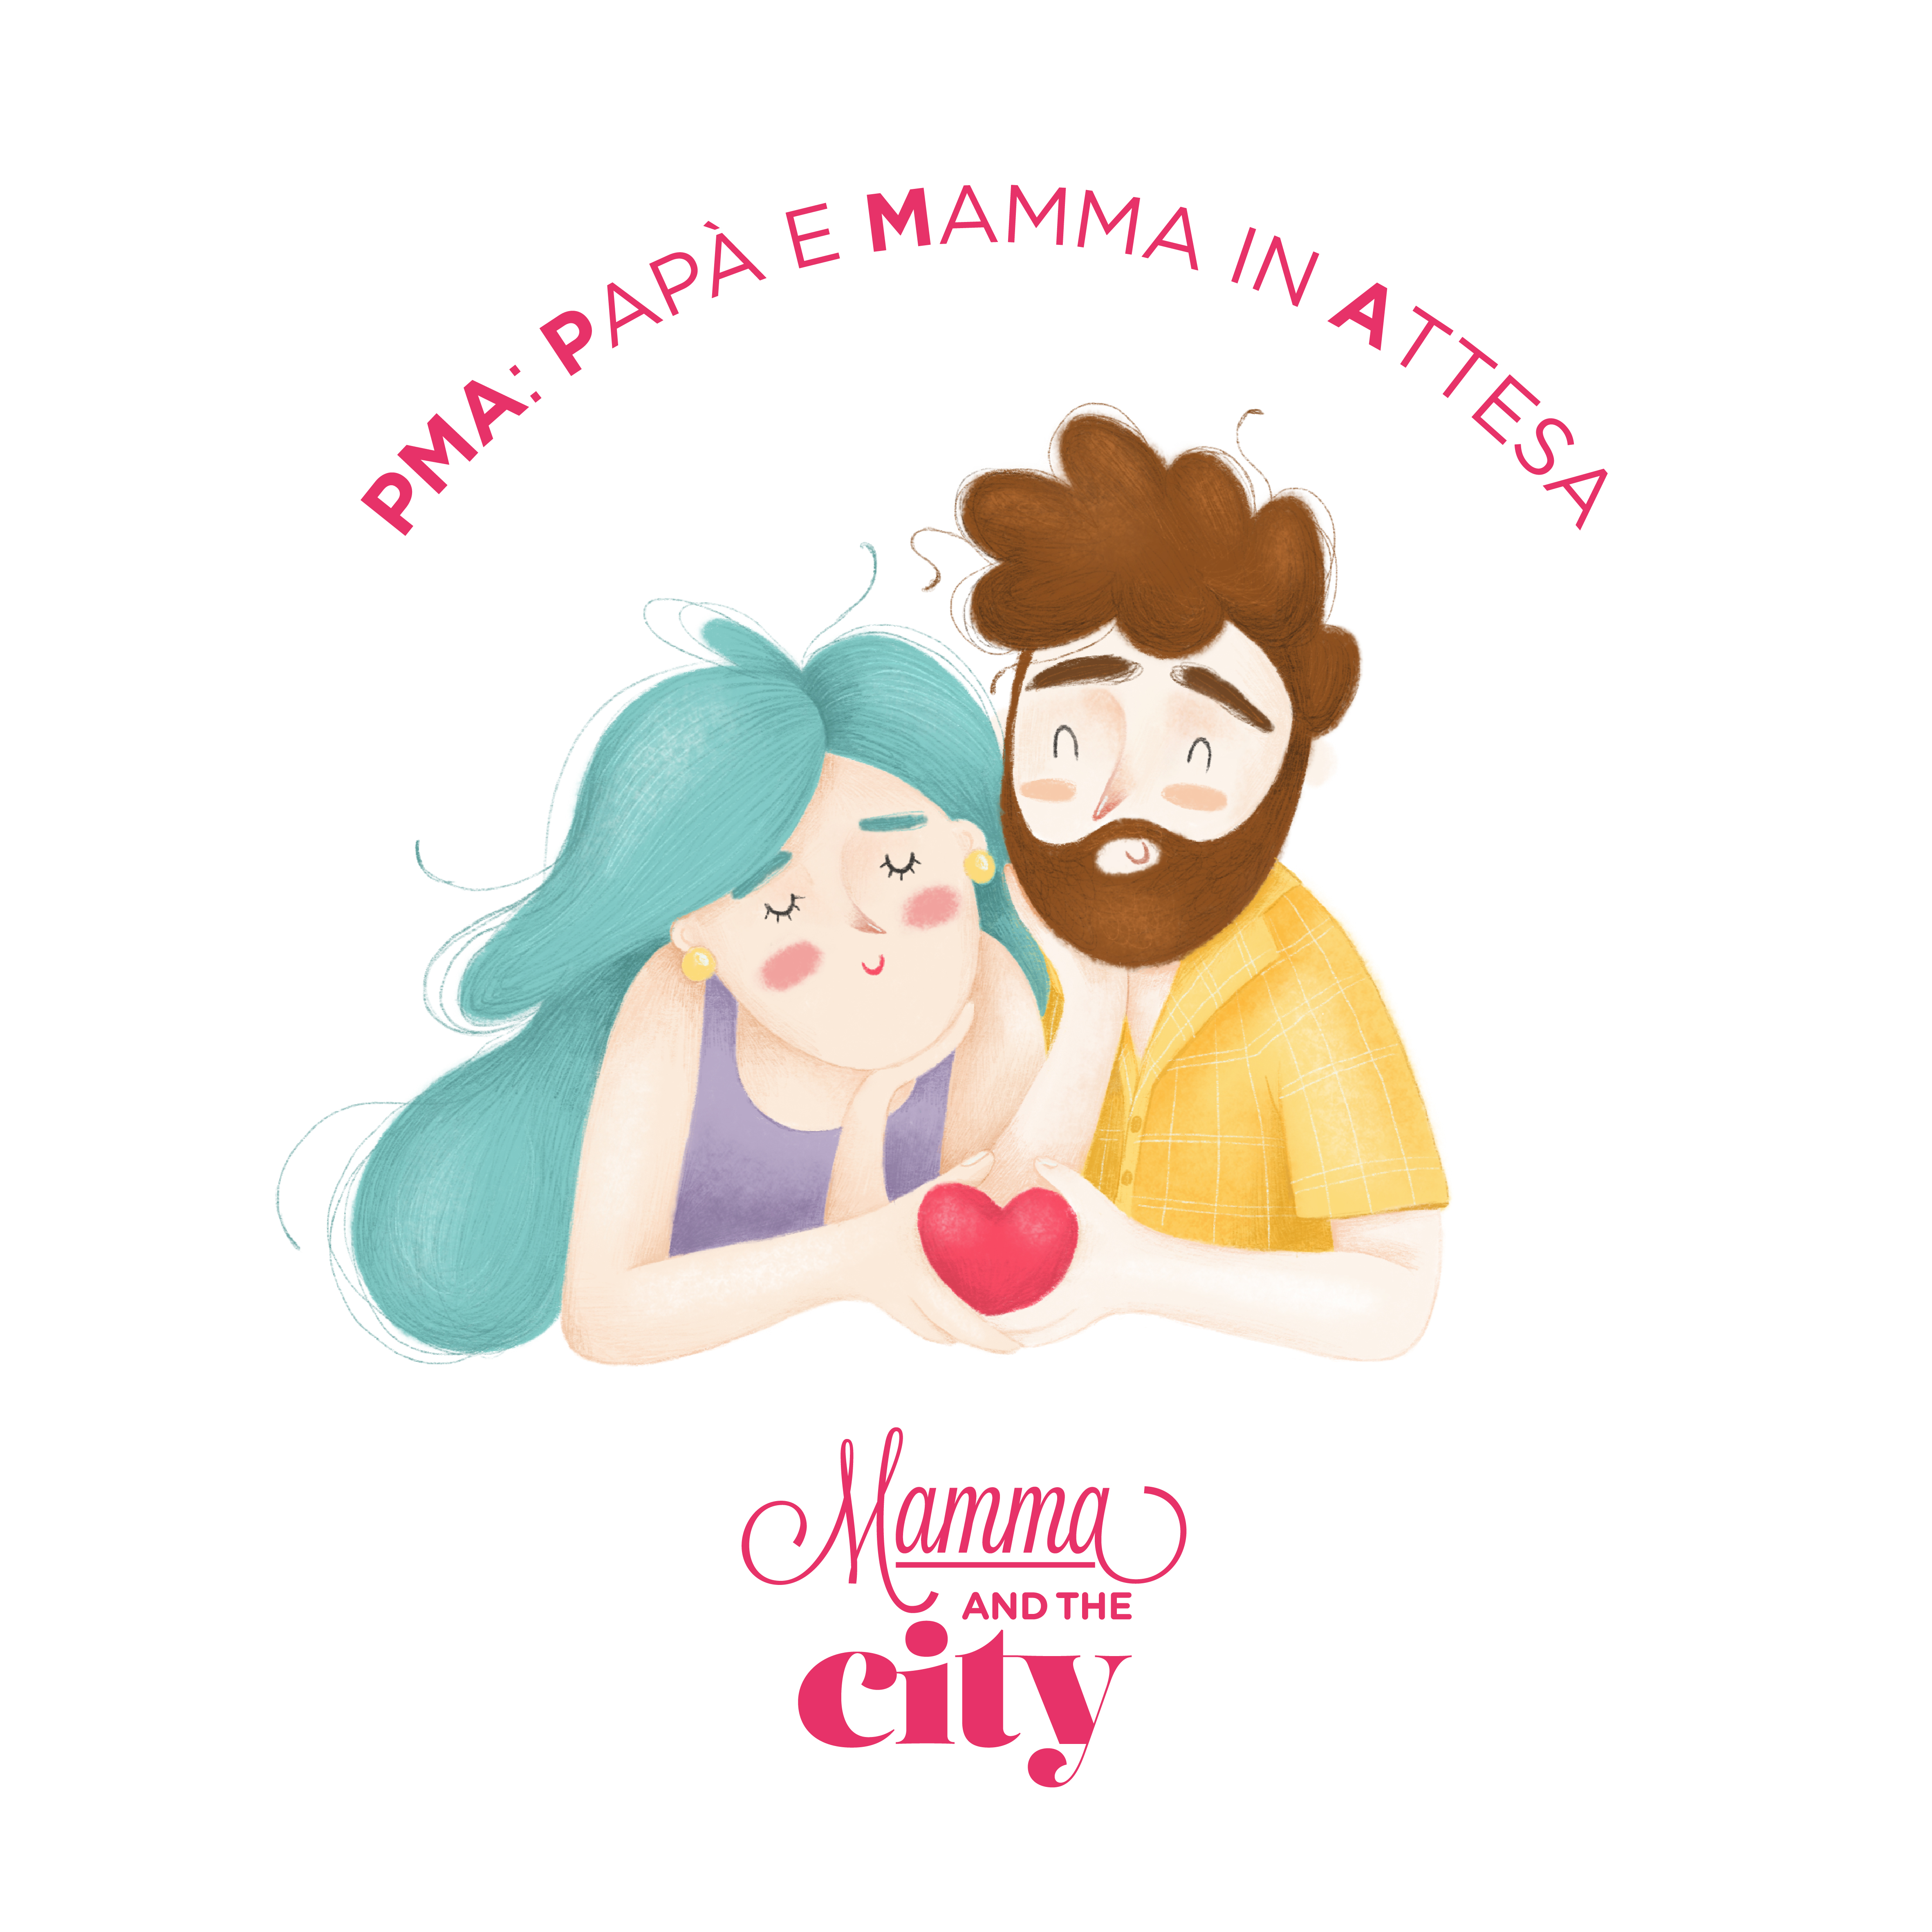 mamma and the city – PMA